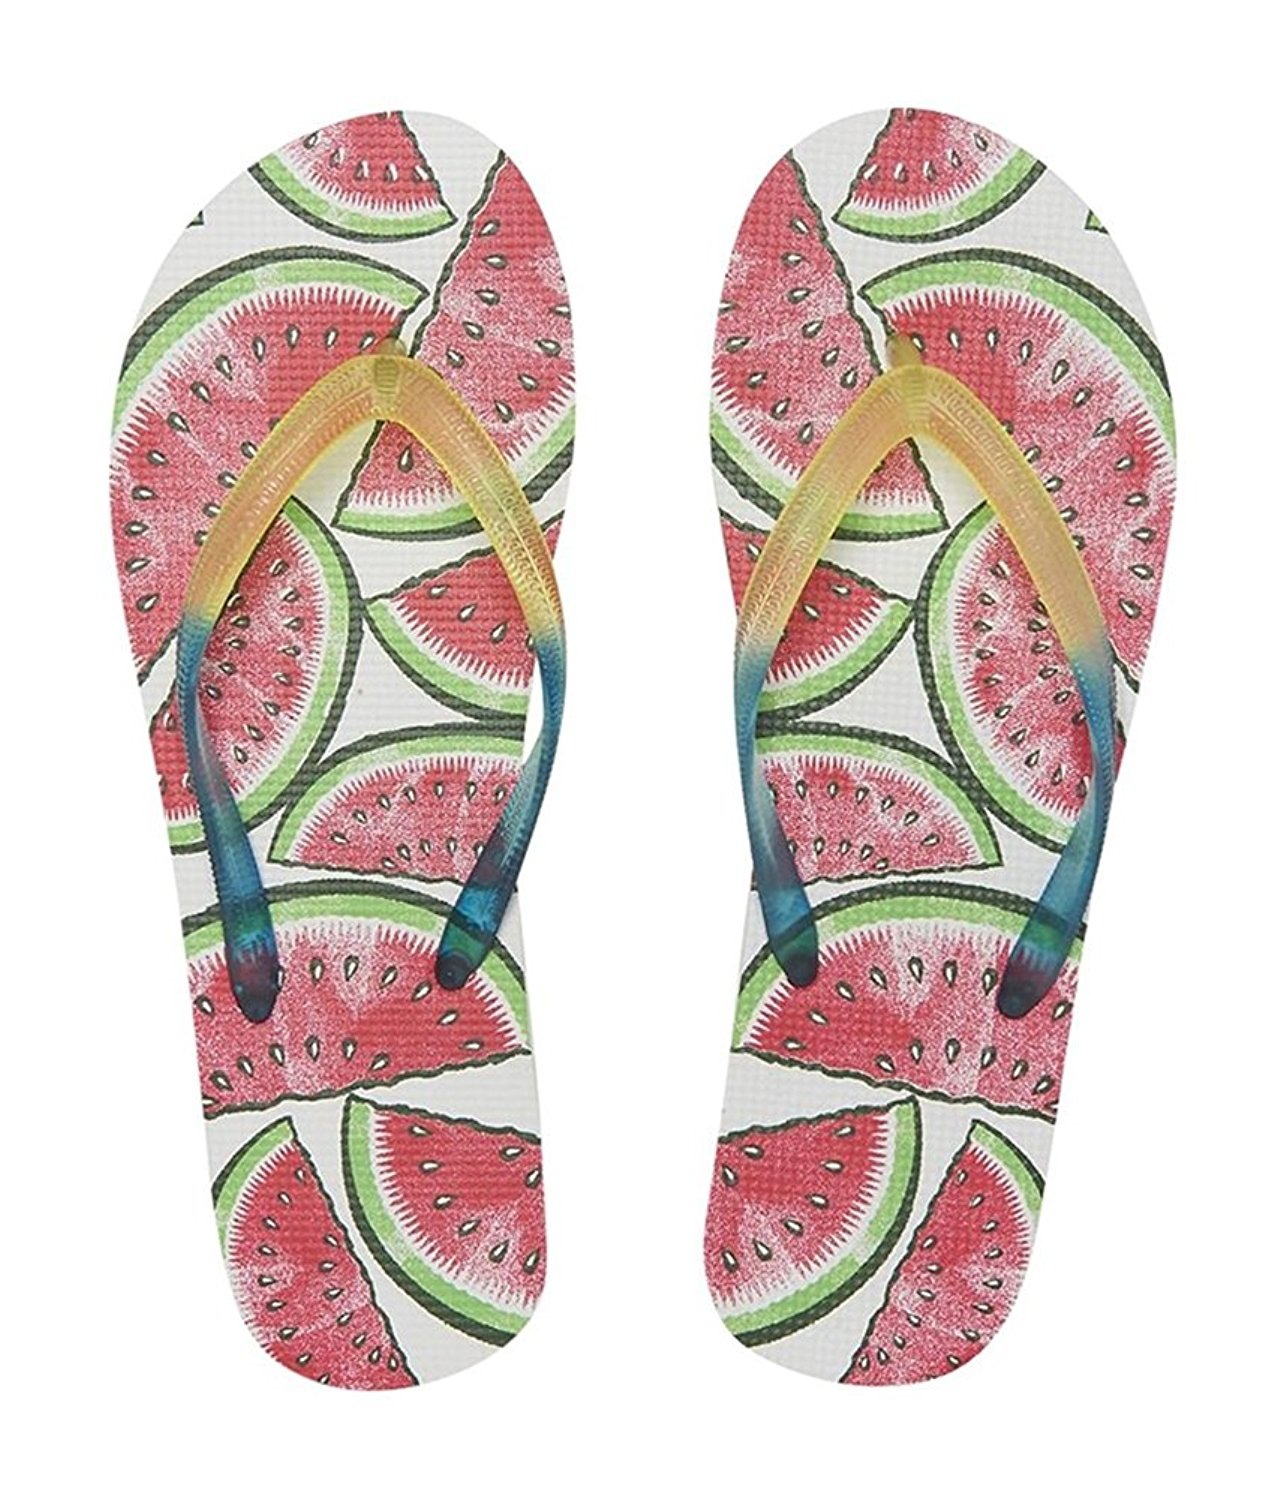 bc2fc5666553 Get Quotations · Aeropostale Womens Watermelon Flip Flop Sandals 768 9